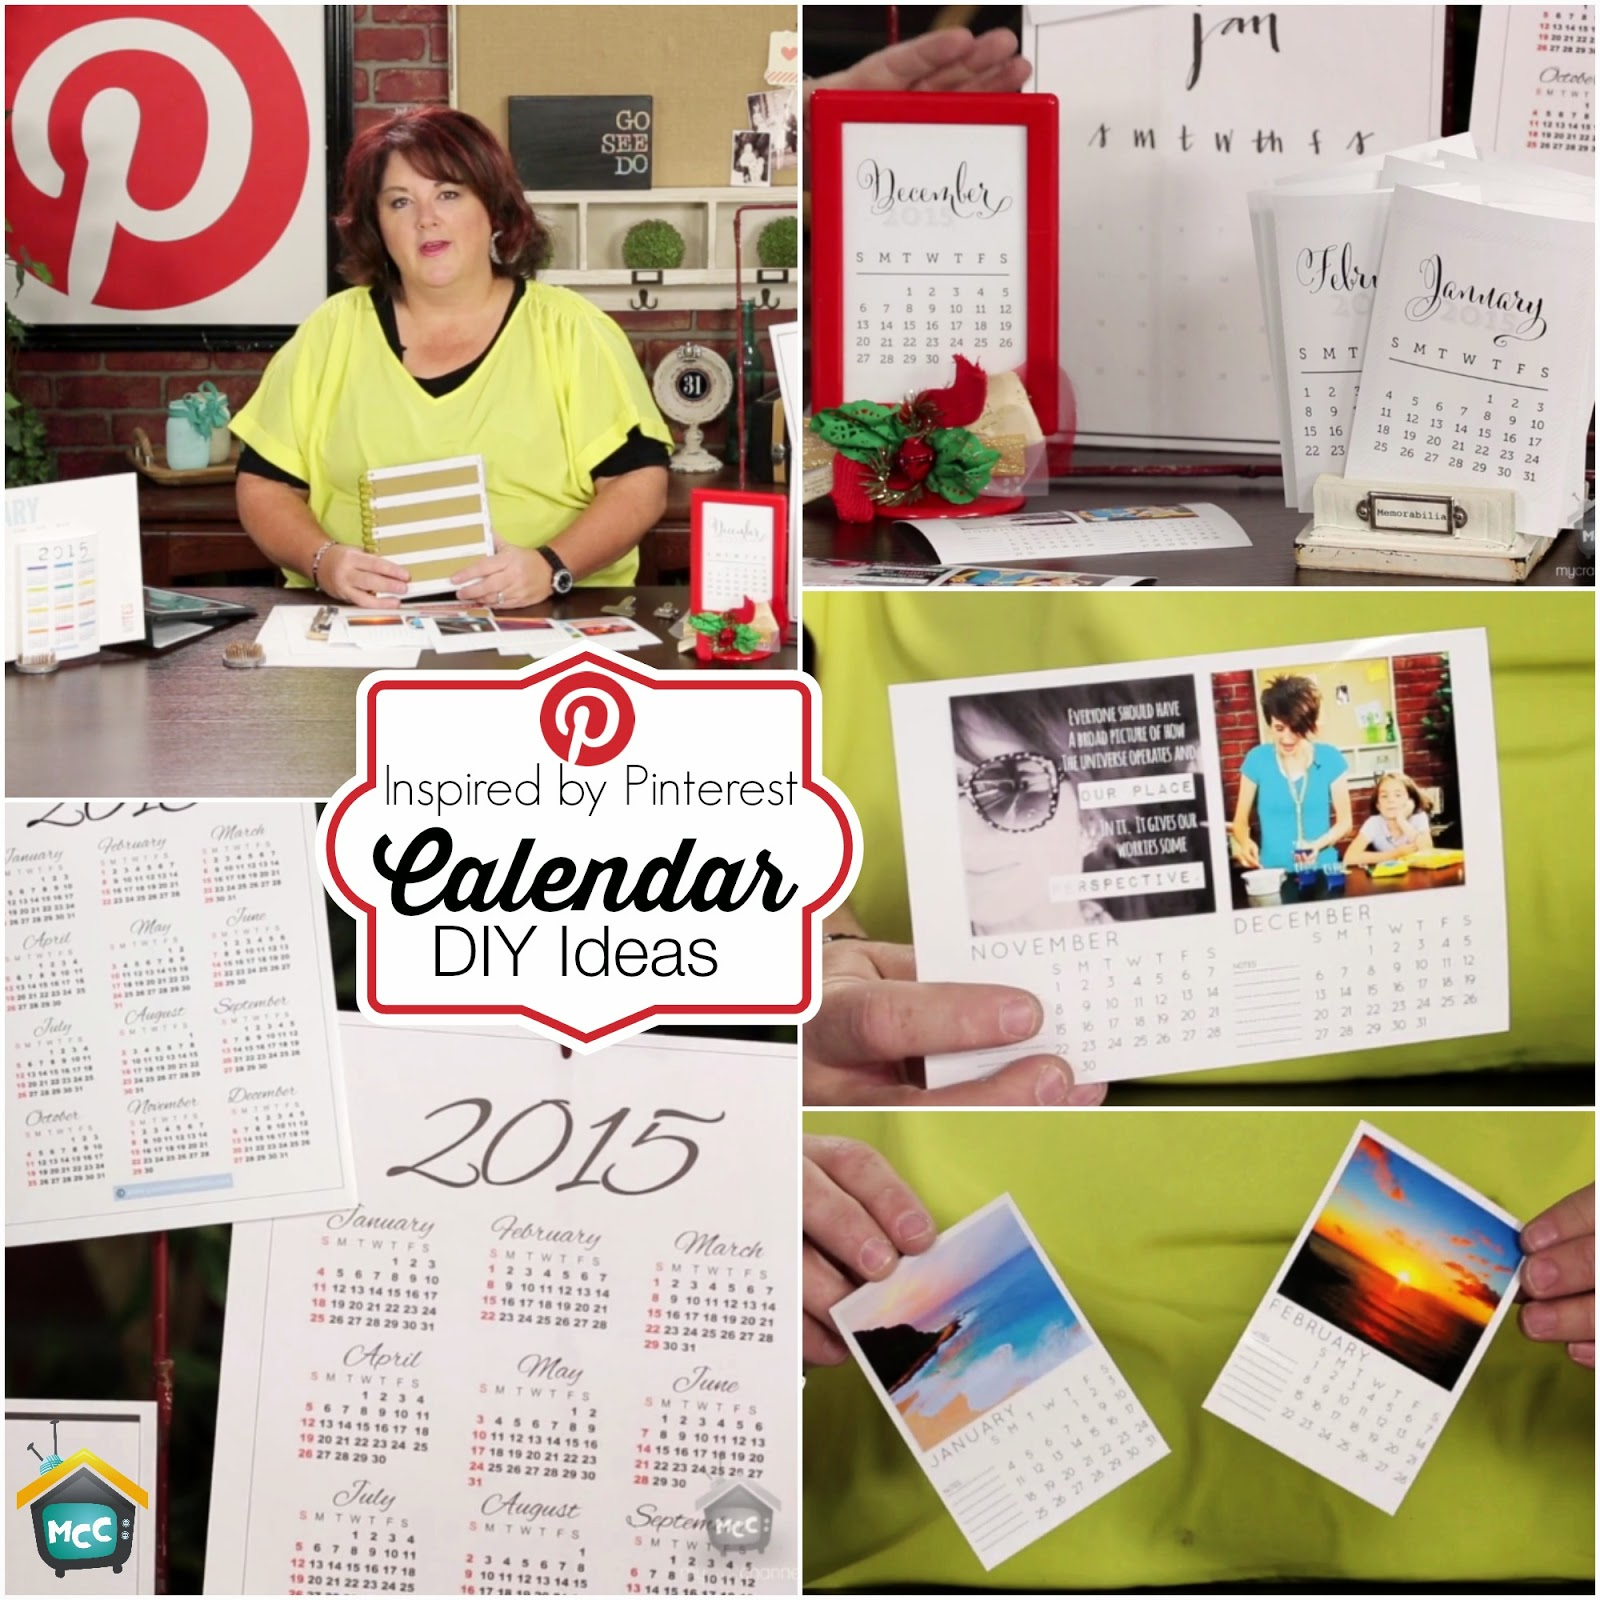 Inspired By Pinterest Calendar Diy Ideas